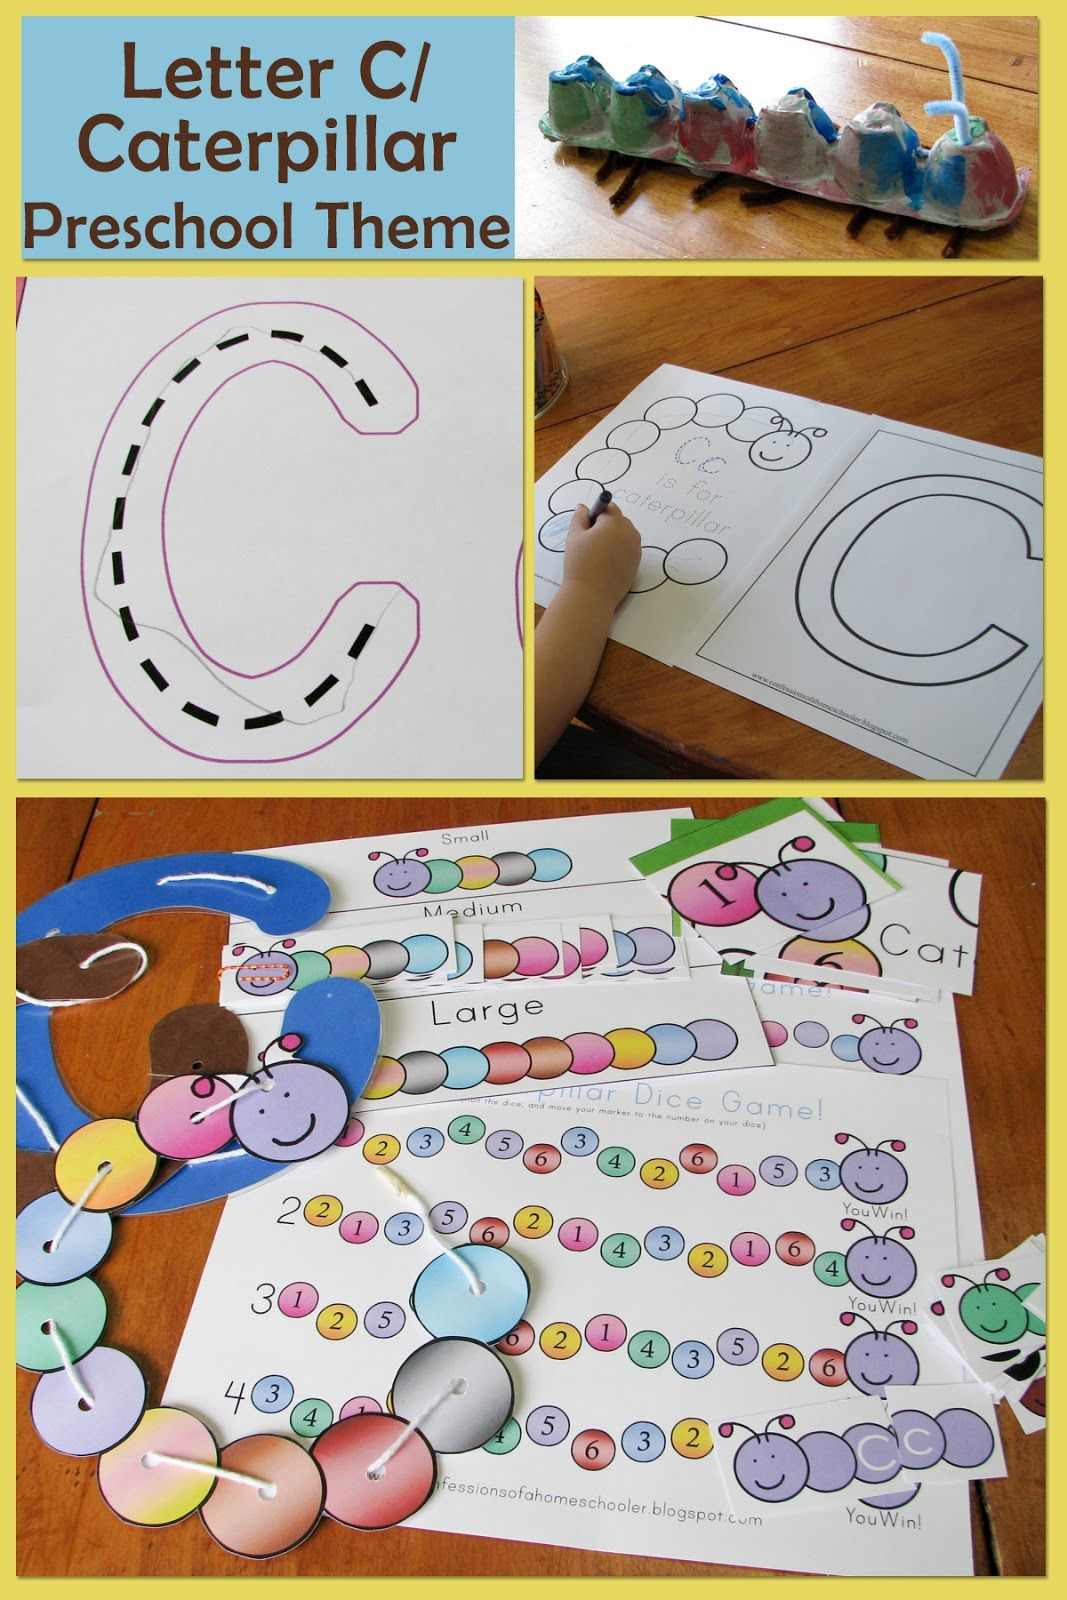 Letter C Caterpillar Preschool Theme